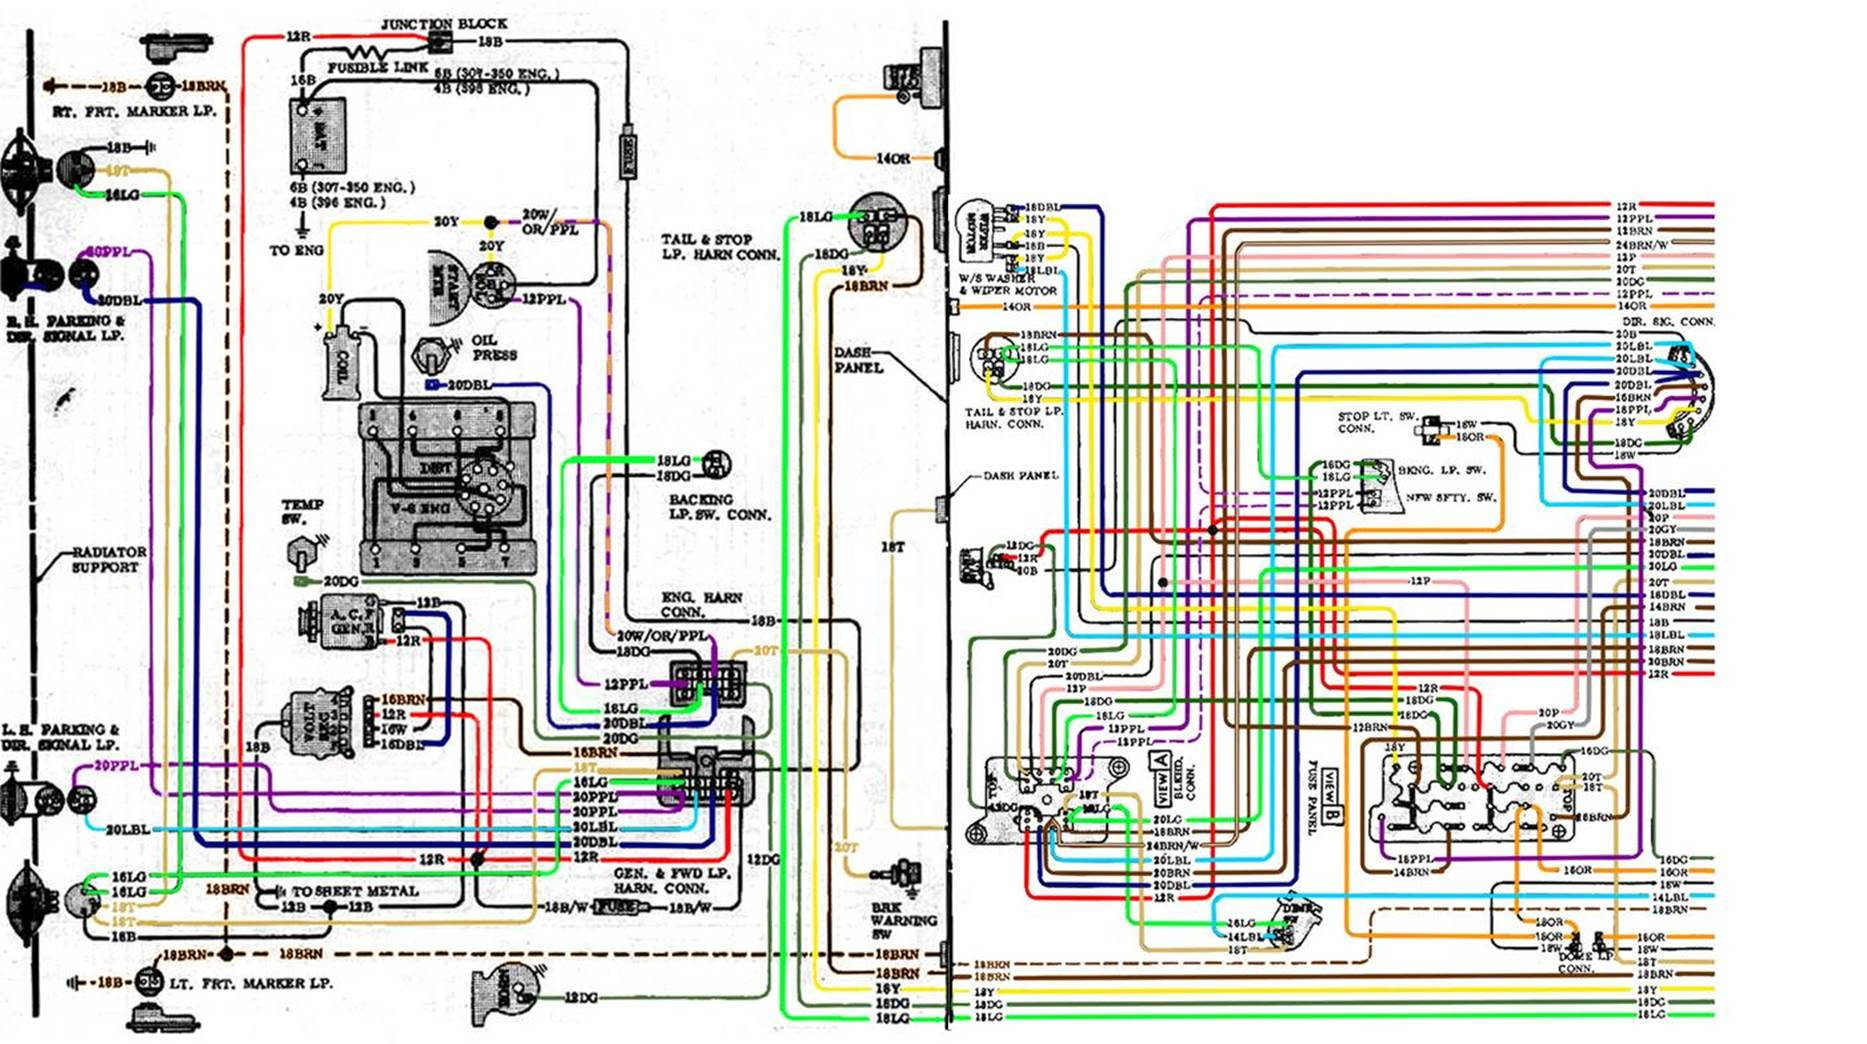 image002 72 c10 wiring diagram chevy truck wiring diagram \u2022 wiring diagrams gm wiring harness diagram at bayanpartner.co